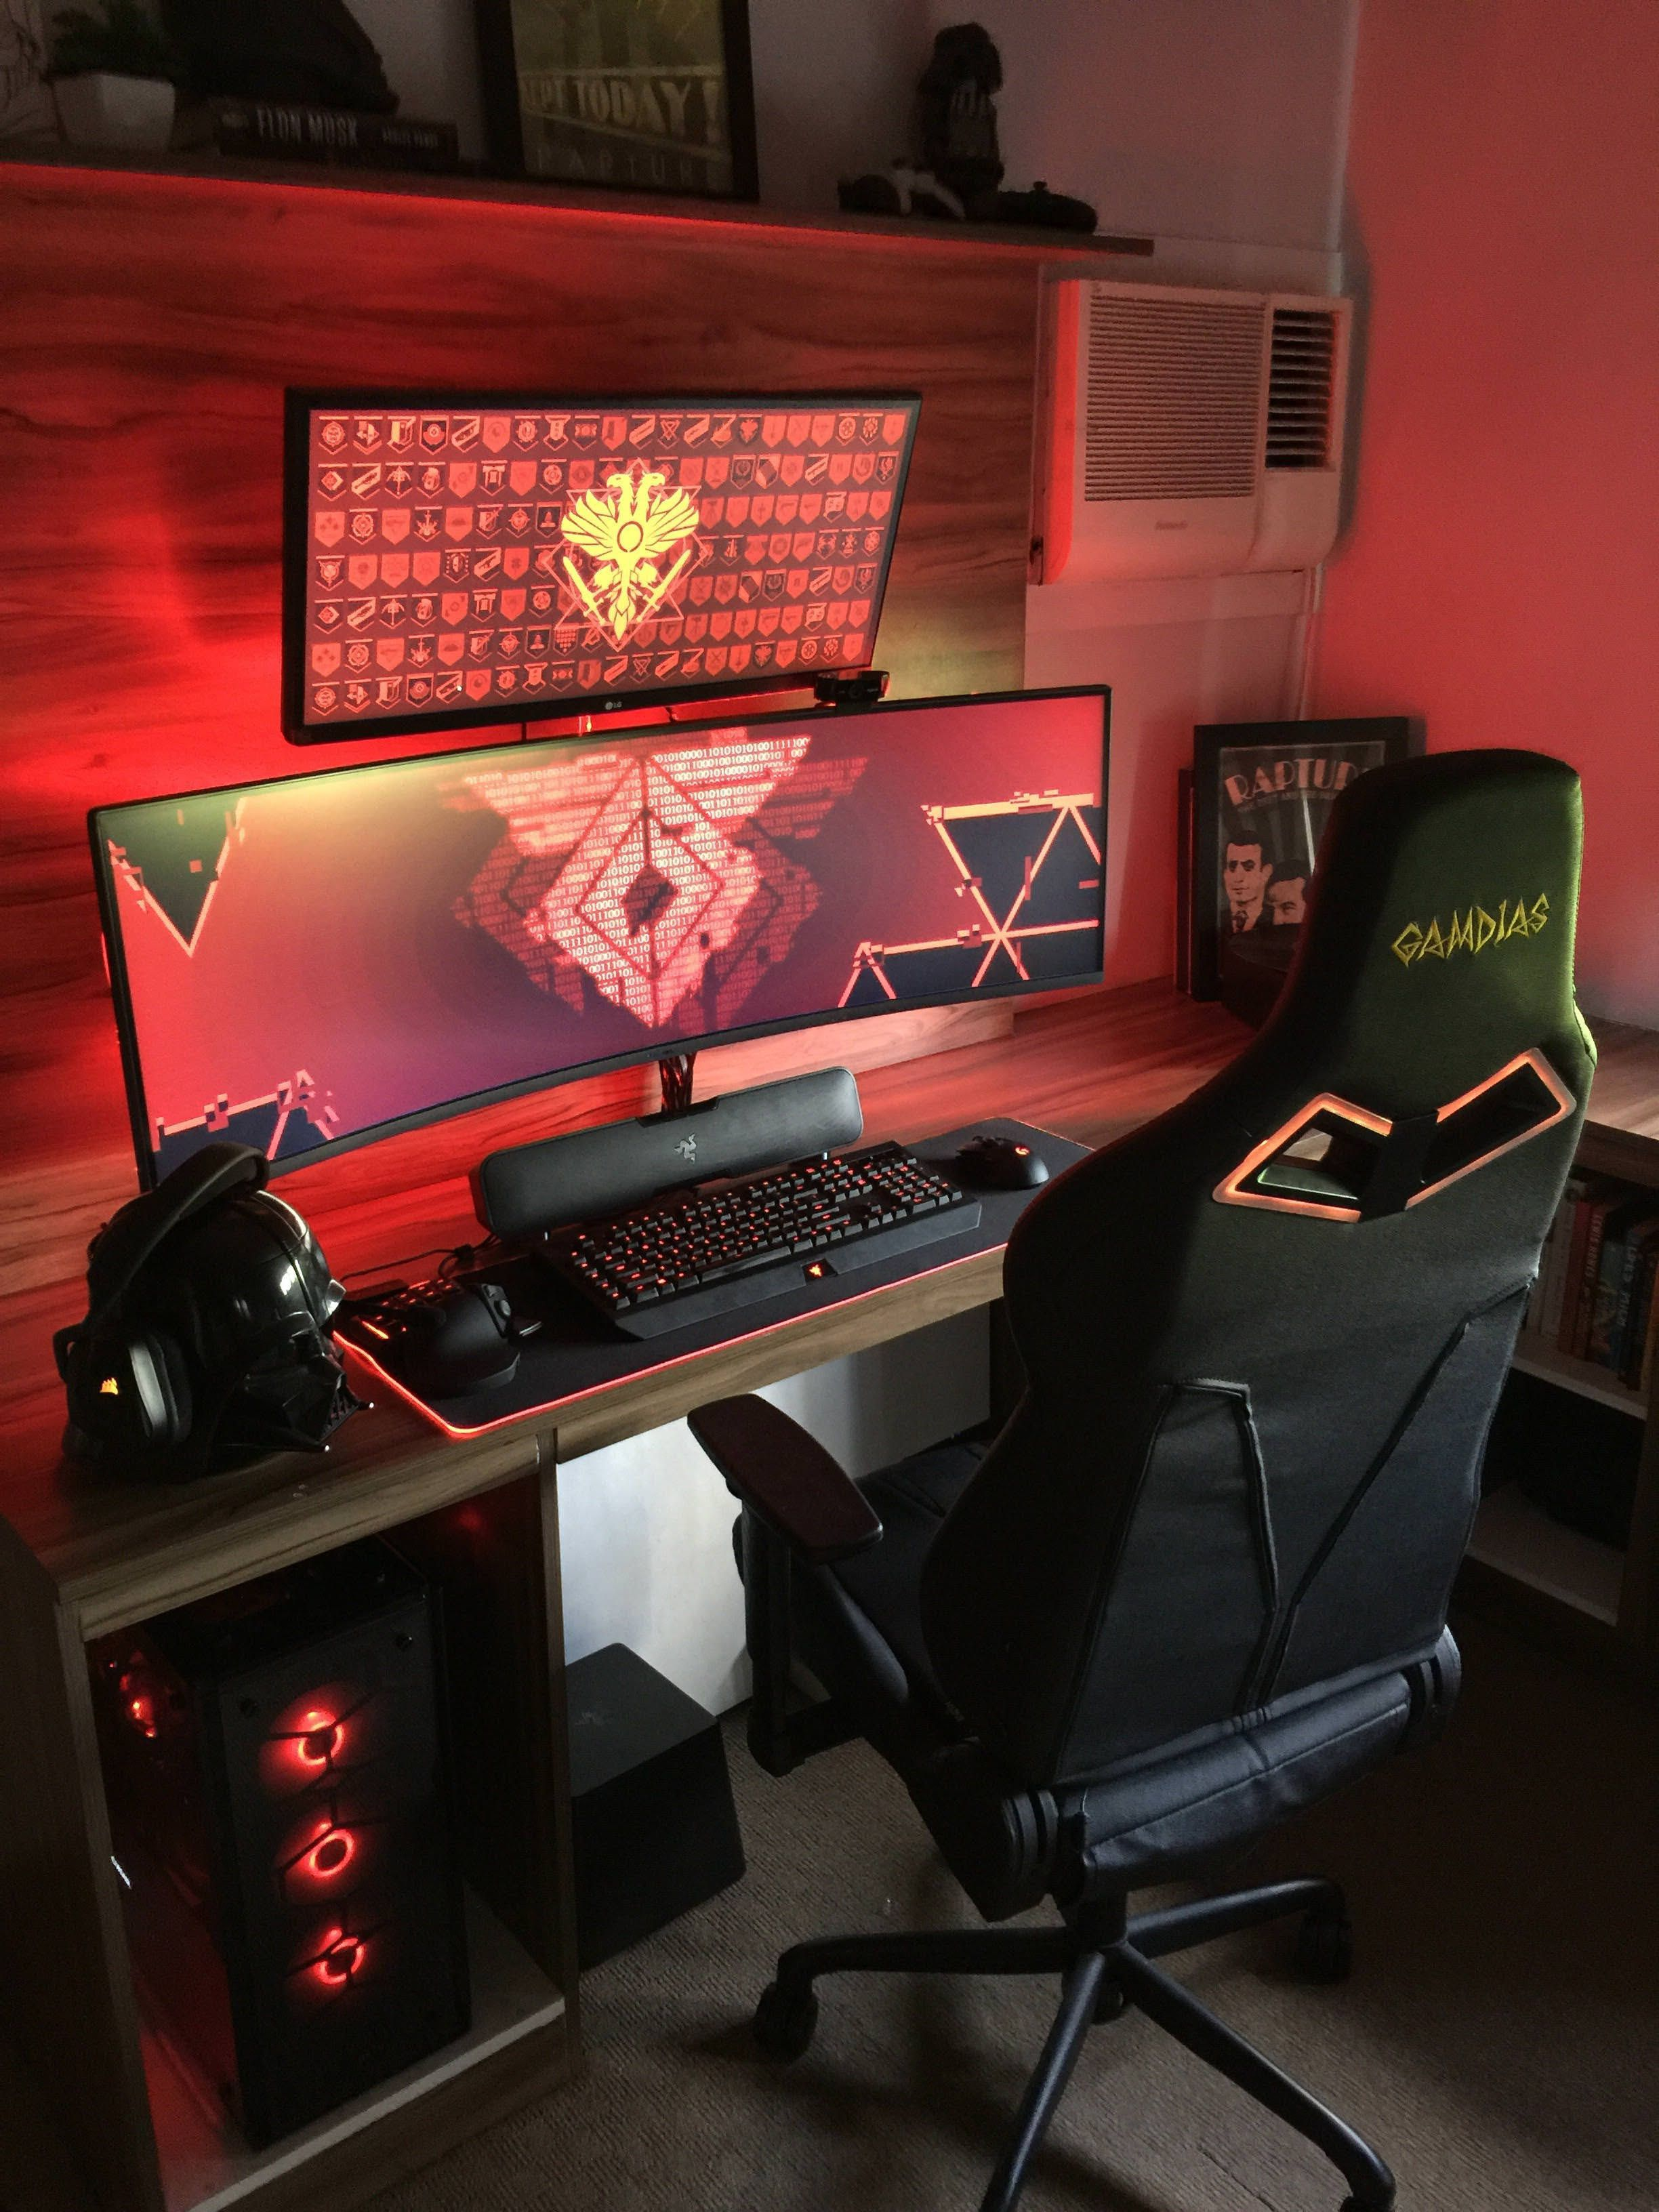 10 DIY Computer Desk Ideas for Home Office #gamingdesk